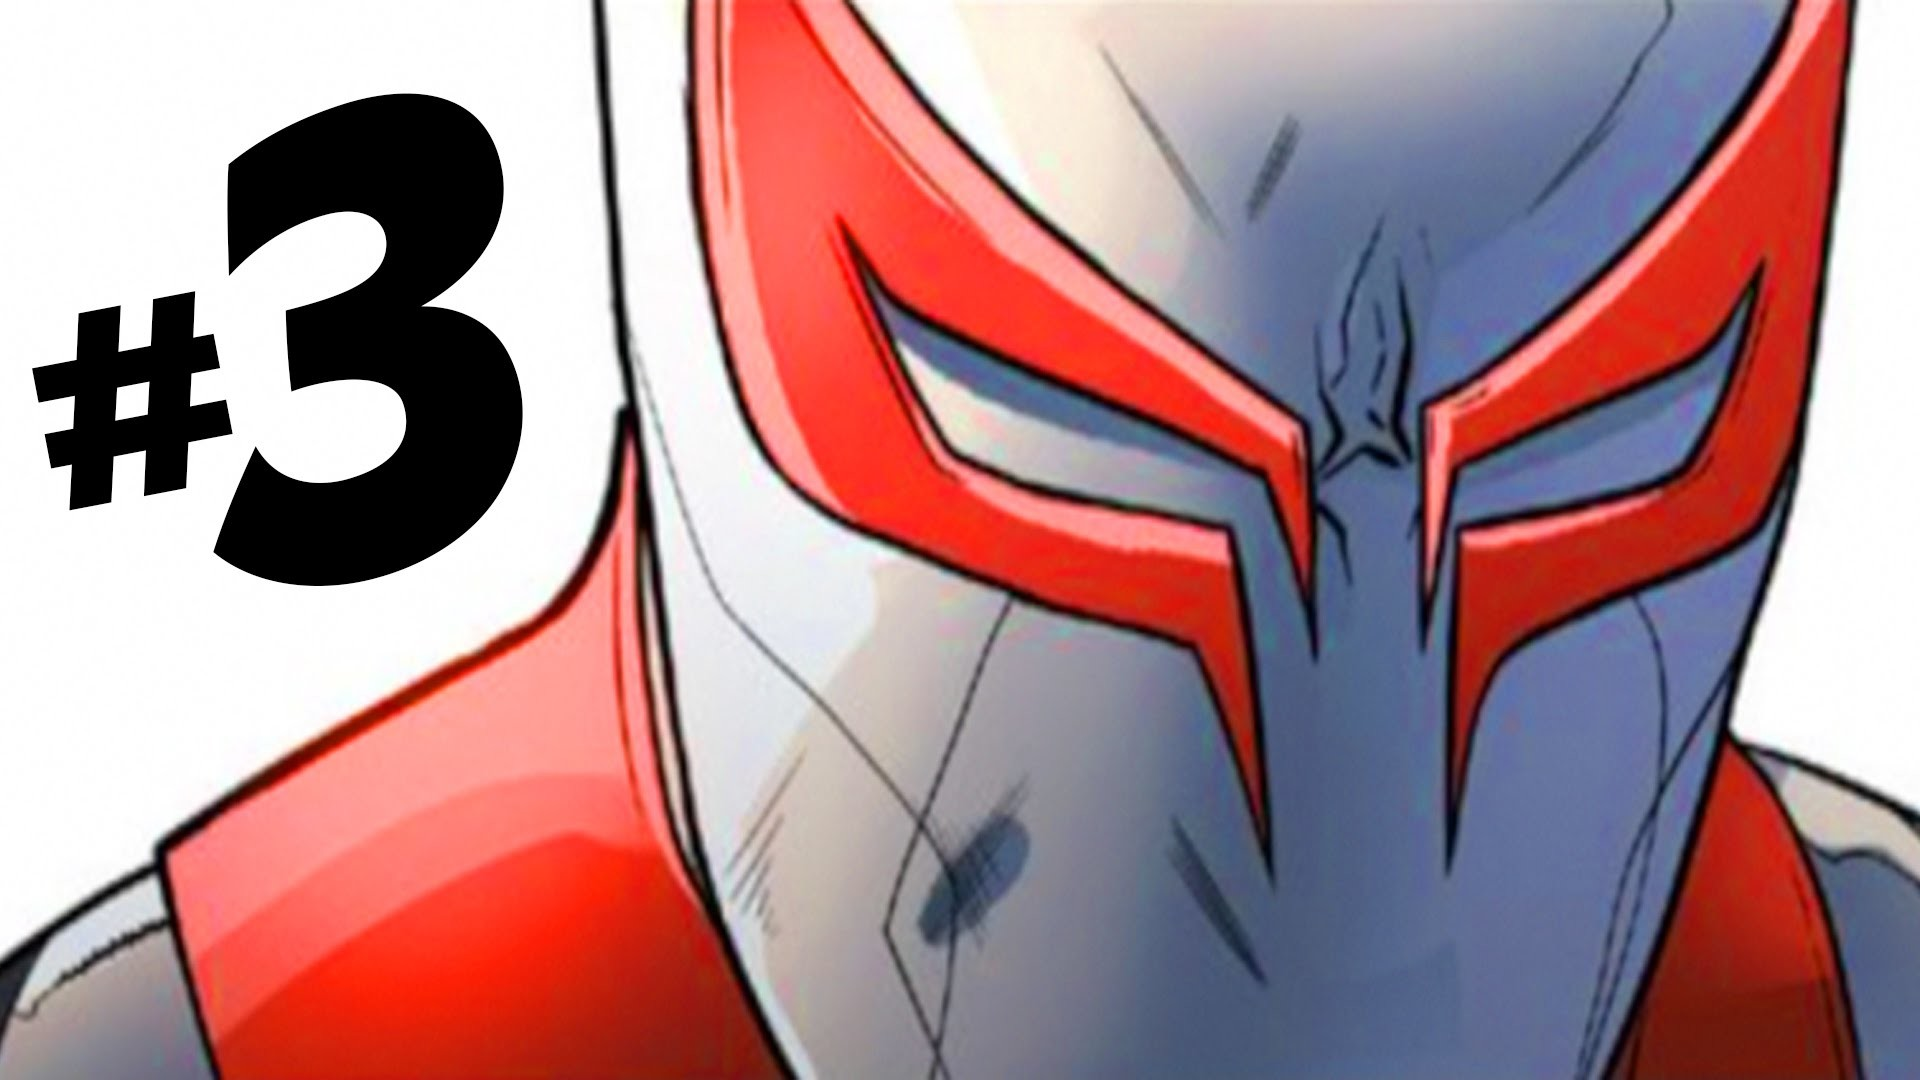 Spider-Man 2099 (All-New All-Different) Issue #3 Full Comic Review! (2015)  – YouTube